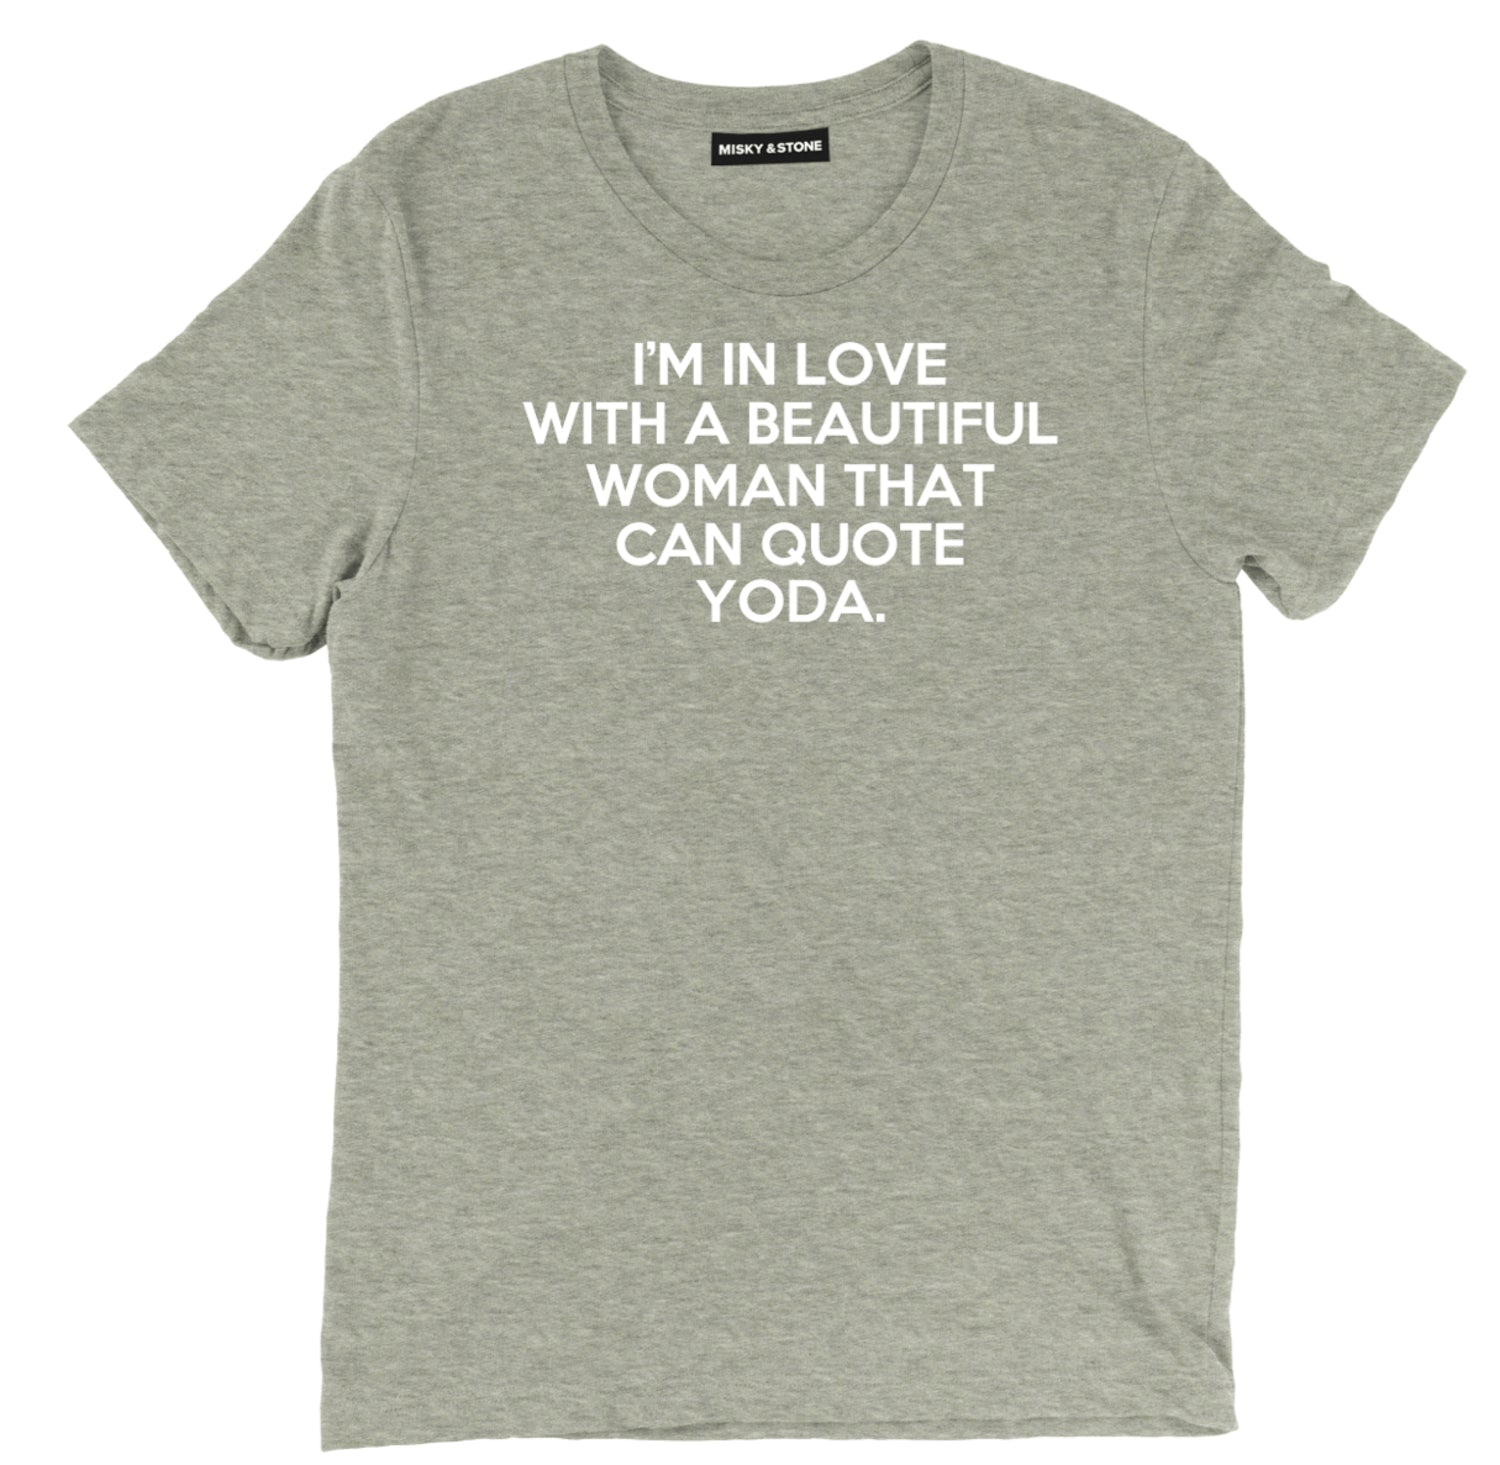 im in love with a woman that can quote yoda tee, funny the big bang t shirt, funny yoda tee, funny the big bang t shirt, tv sitcom apparel, tv sitcom tee shirt, tv sitcom clothing, tv sitcom merch